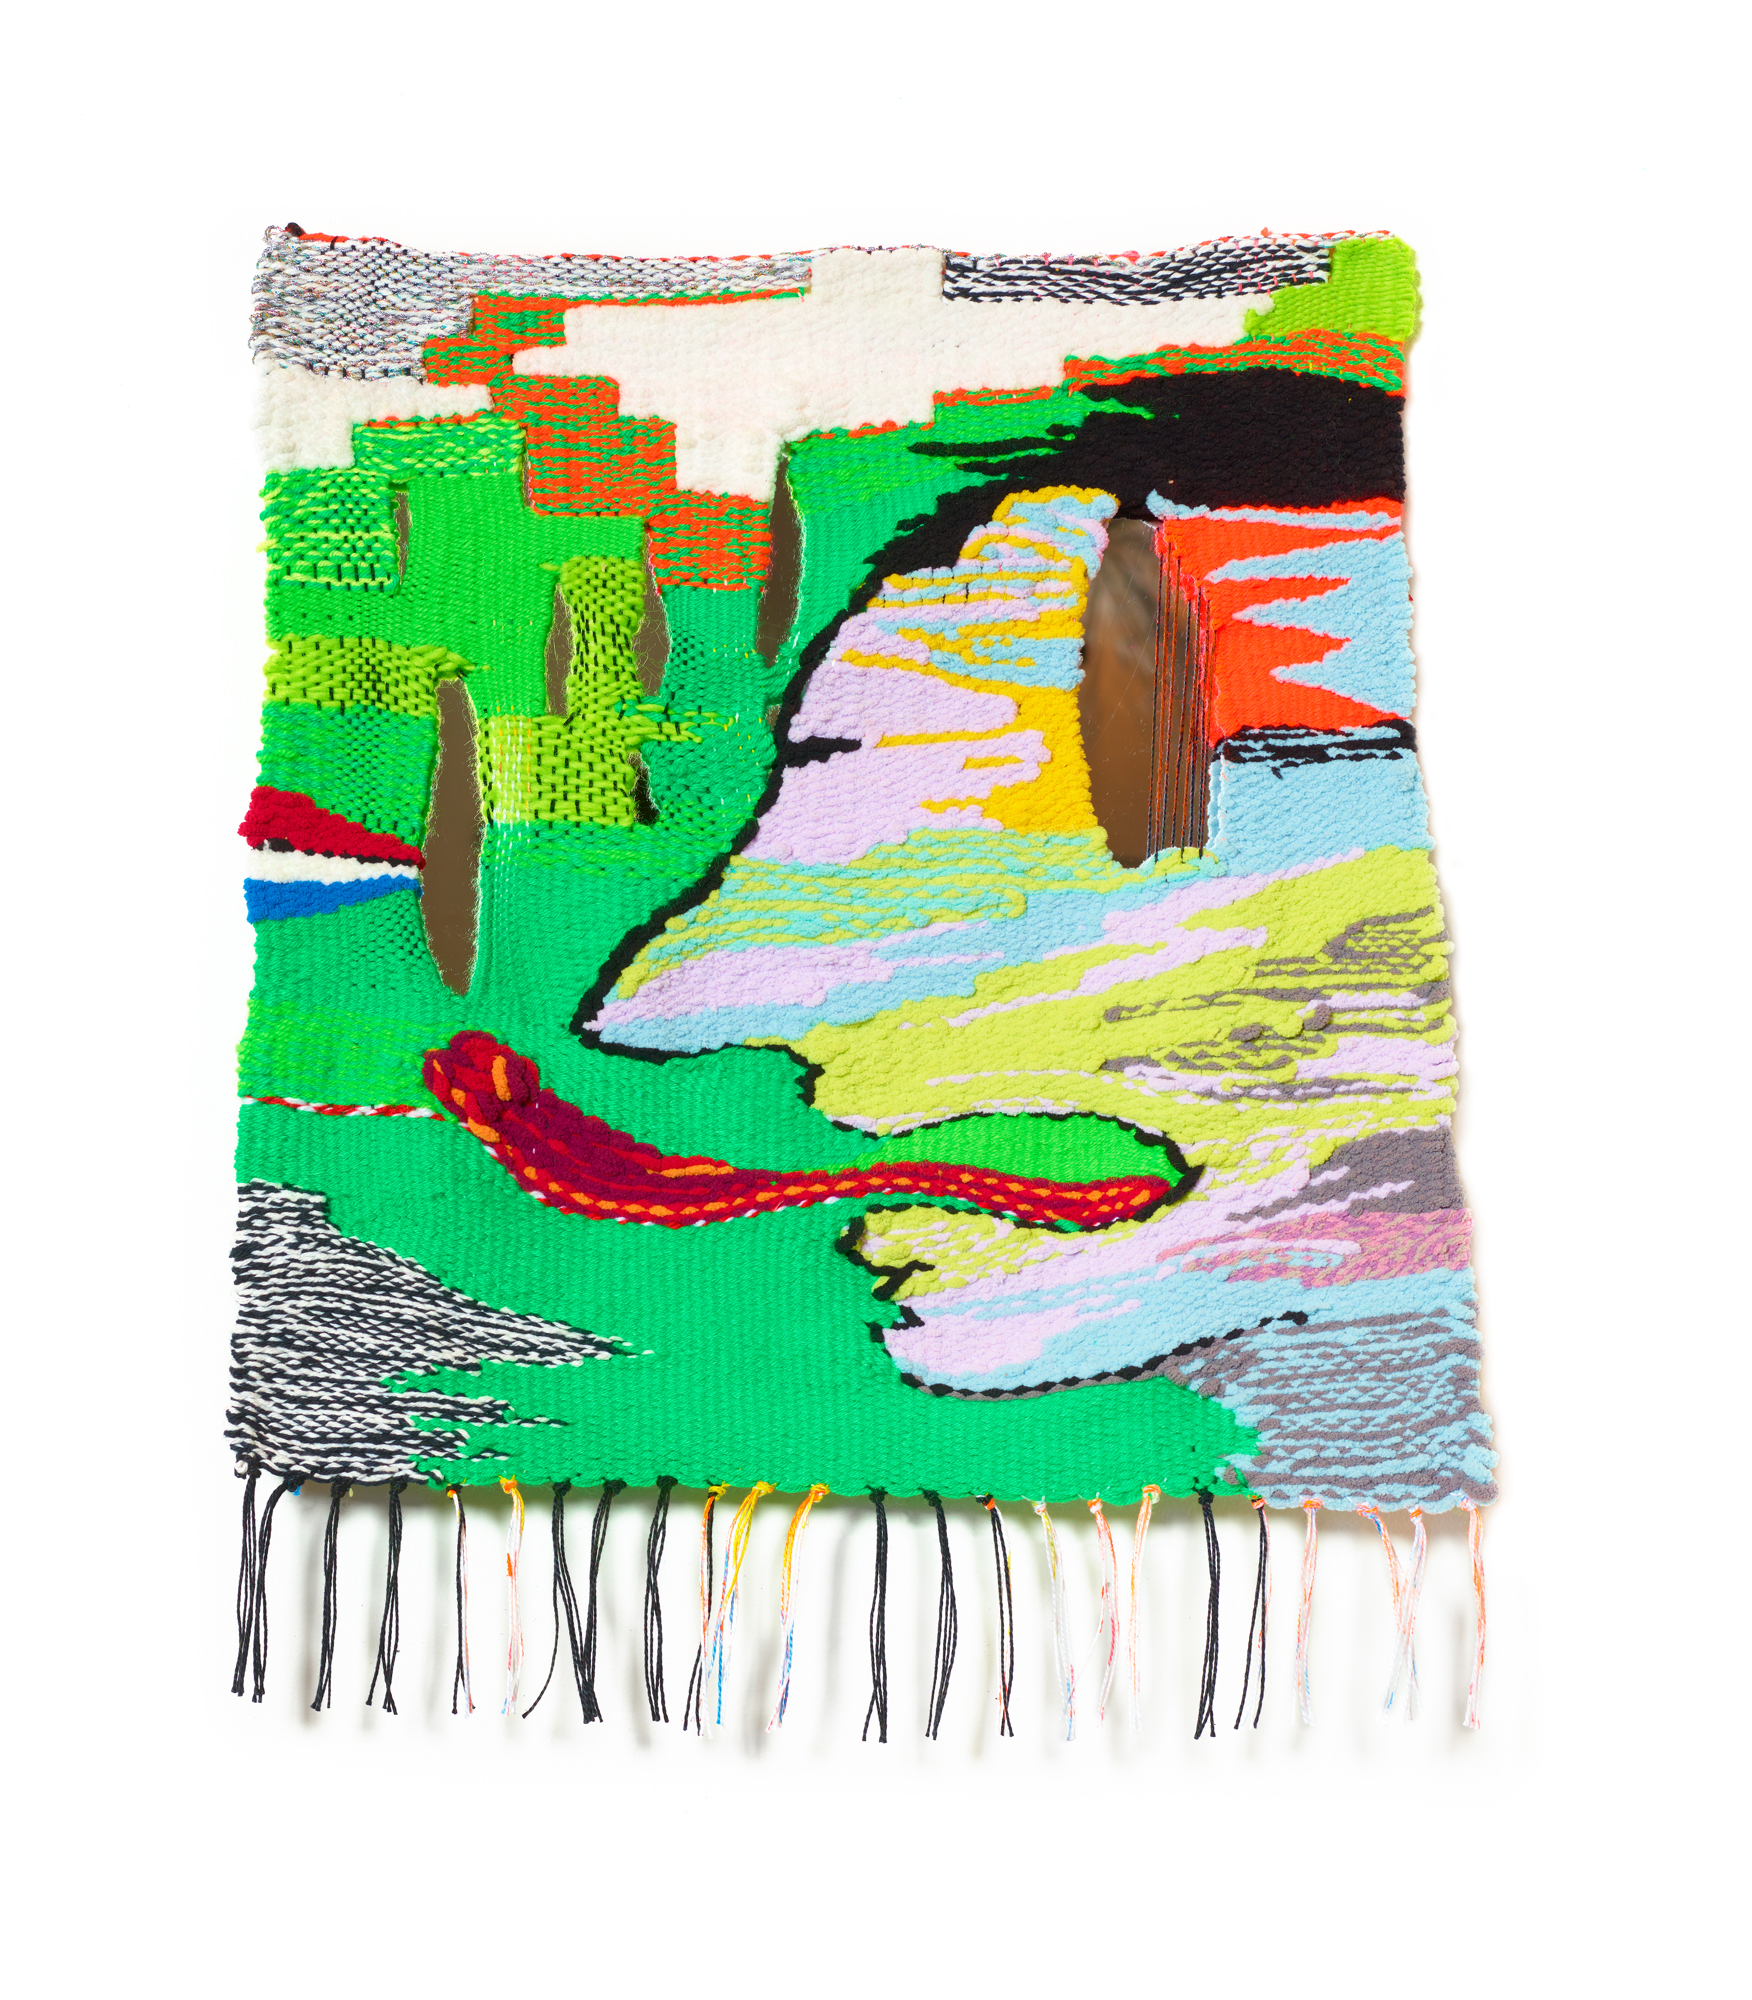 Licking the Rain, 2019, 19 x 26 in, Acrylic, cotton, wool, polyester fibers